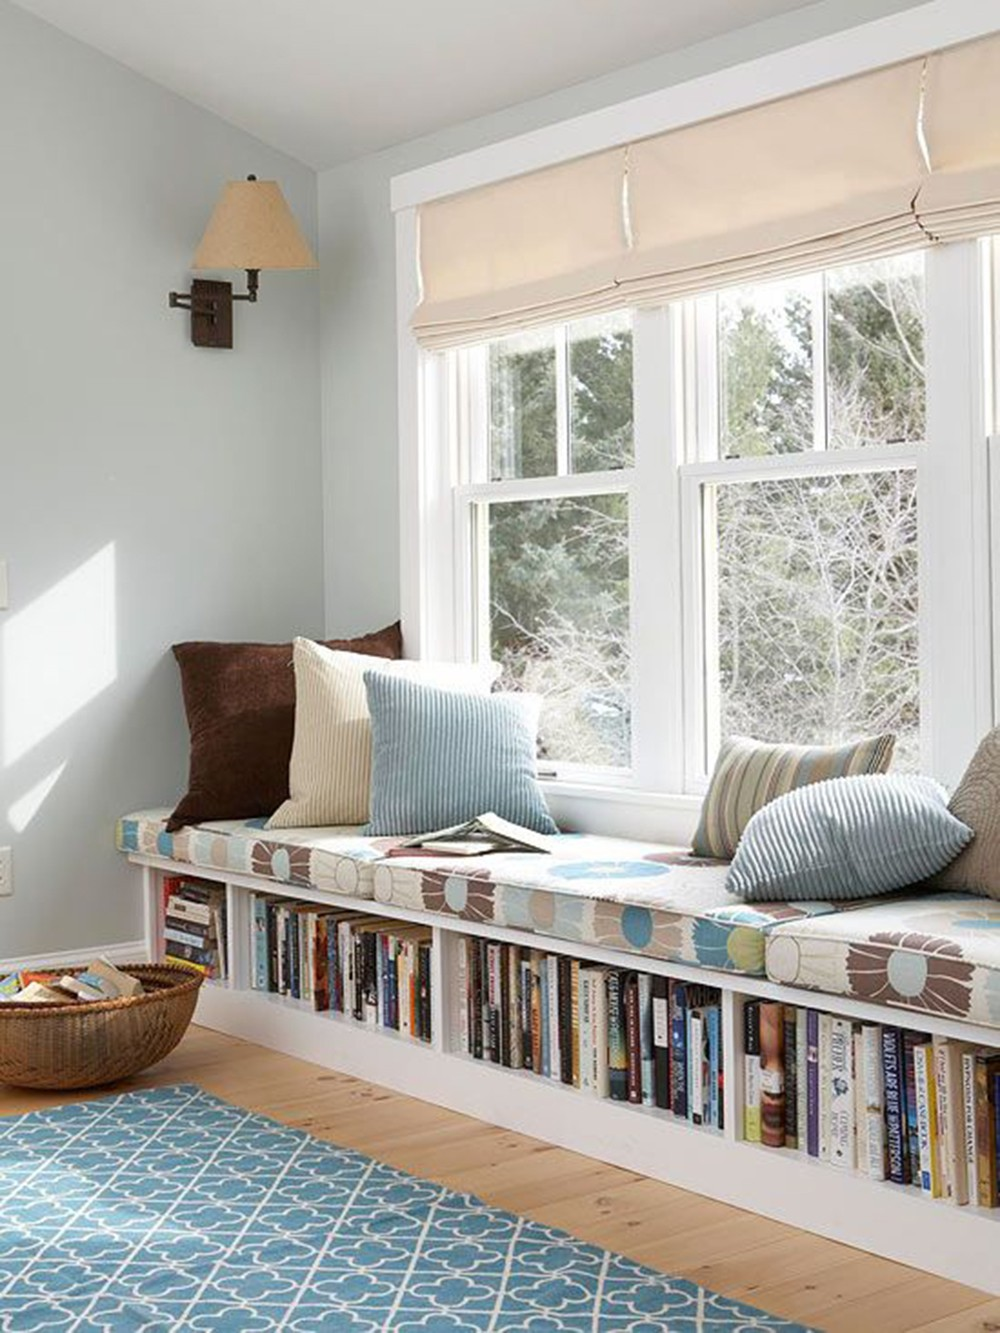 18 unique reading nook design ideas style motivation How to store books in a small bedroom